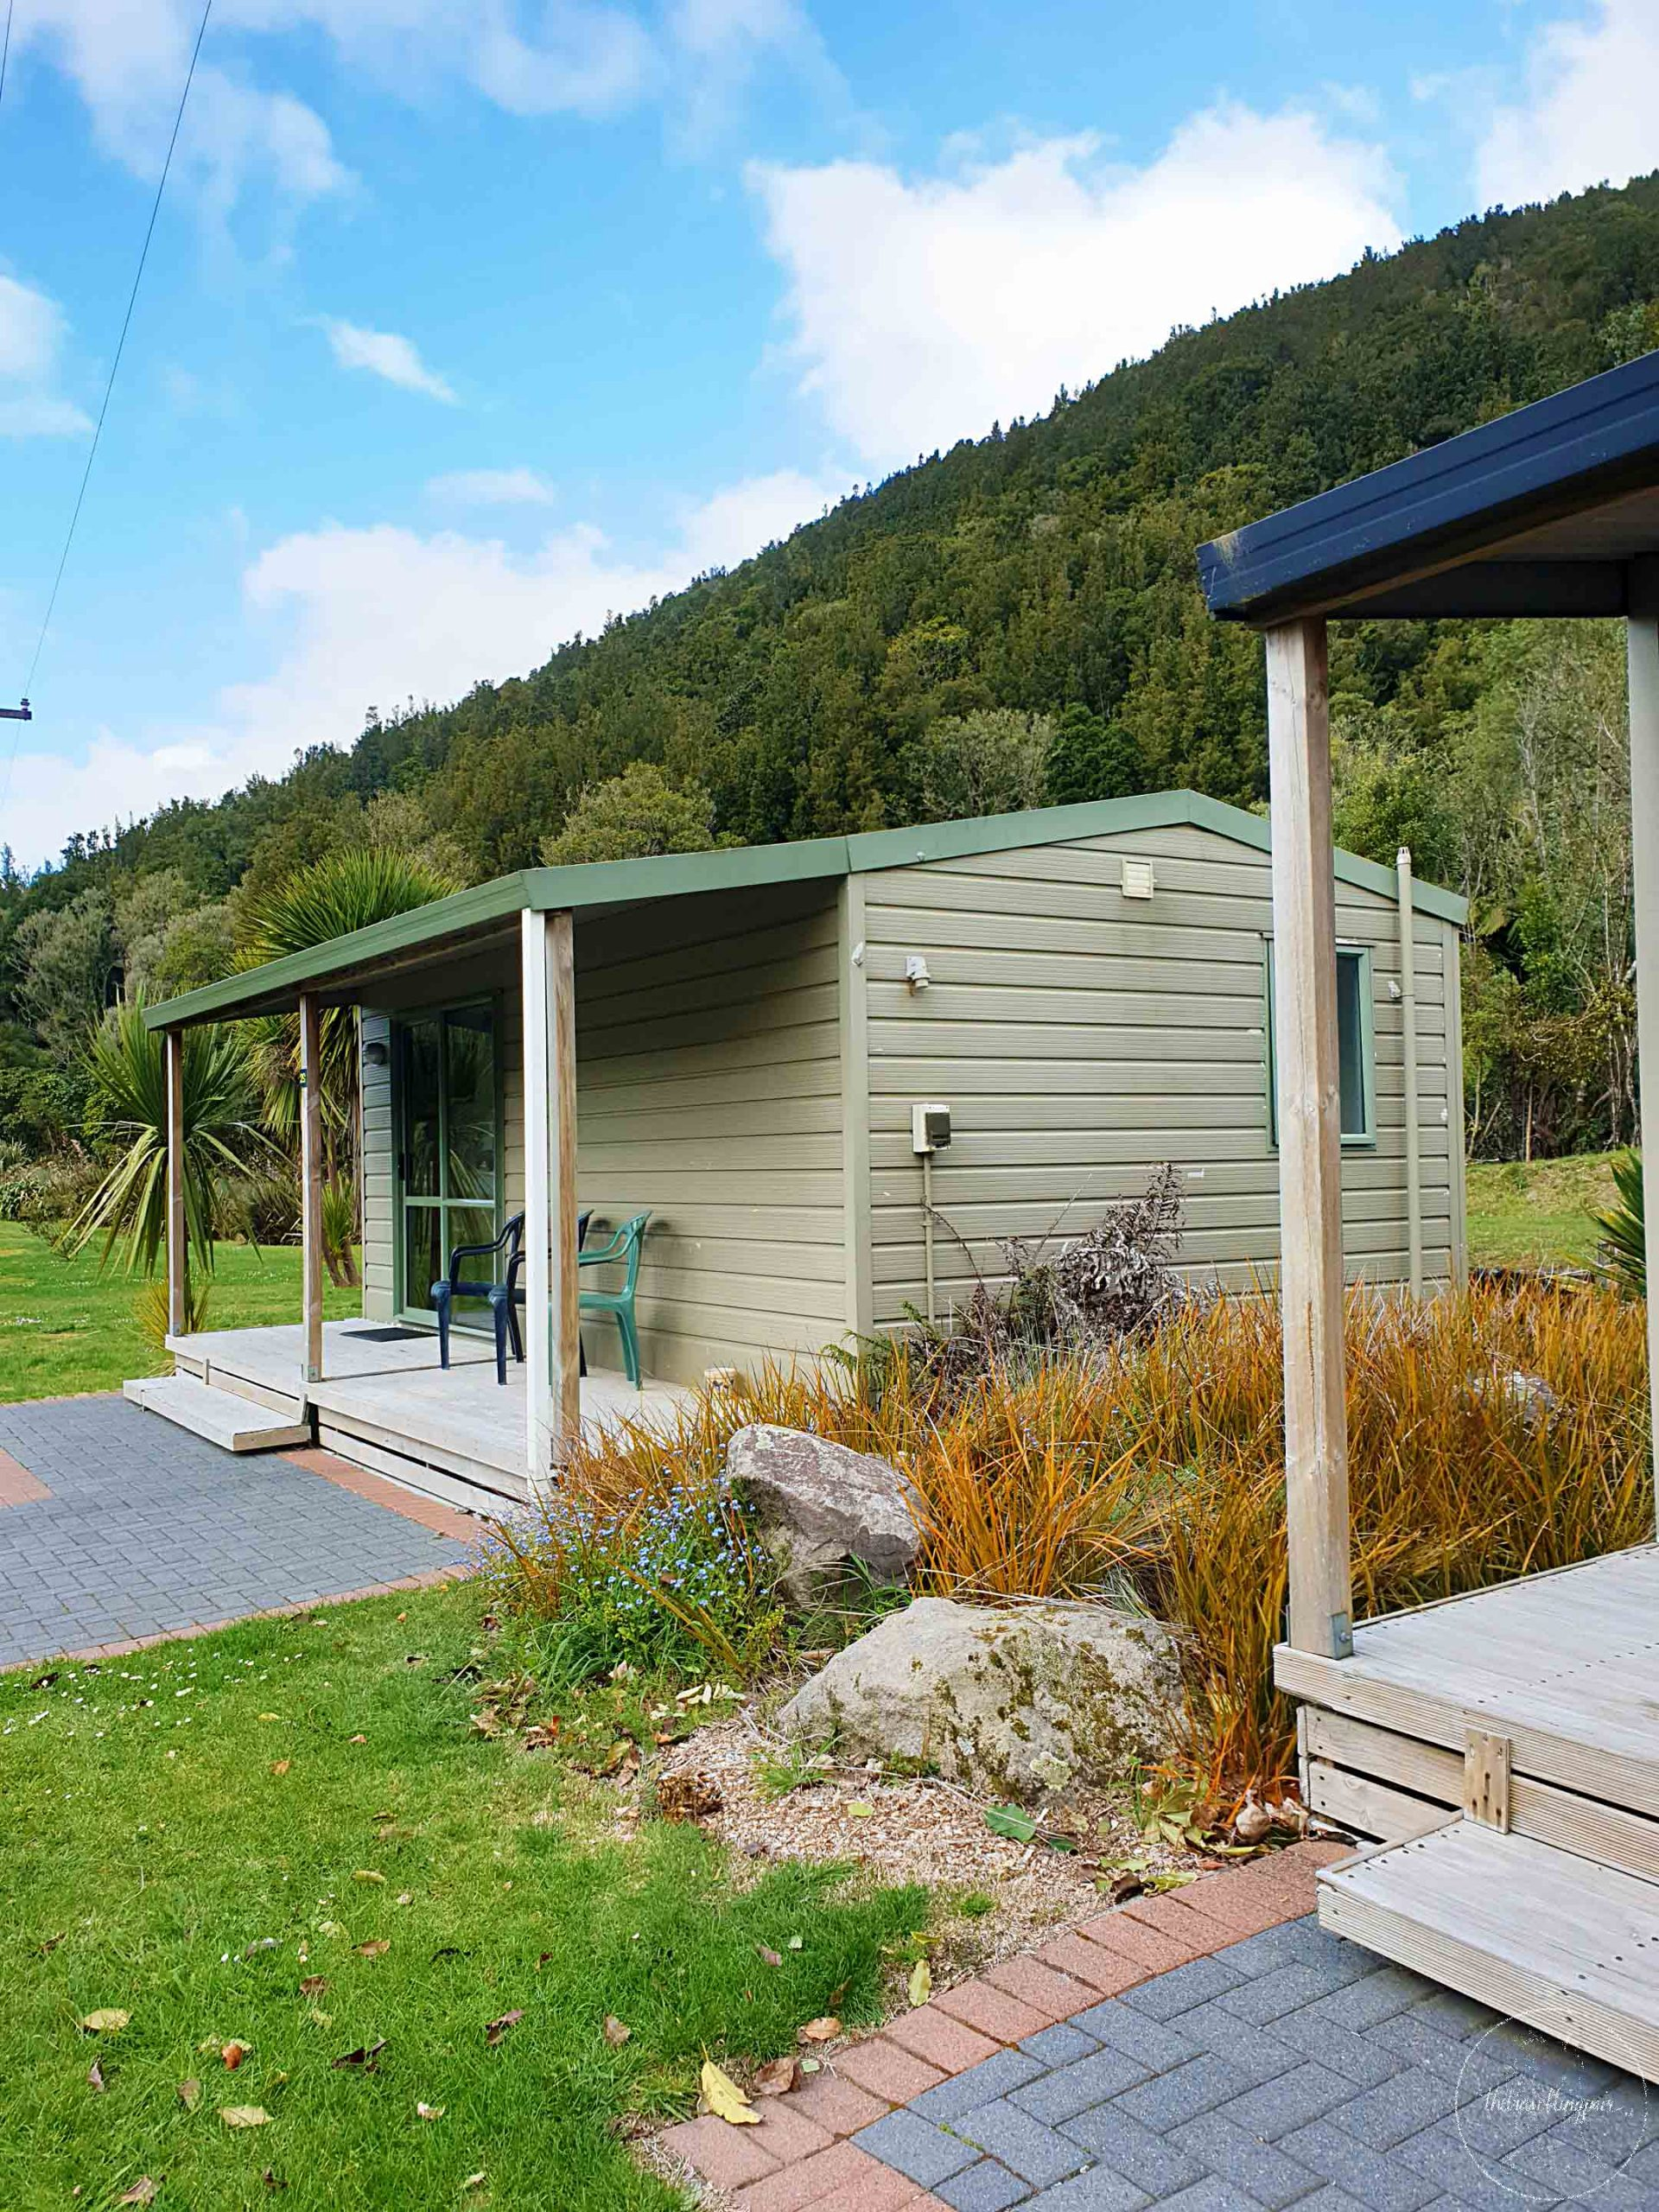 Top 10 Blue Lake Holiday Park - Join the Travelling Pair